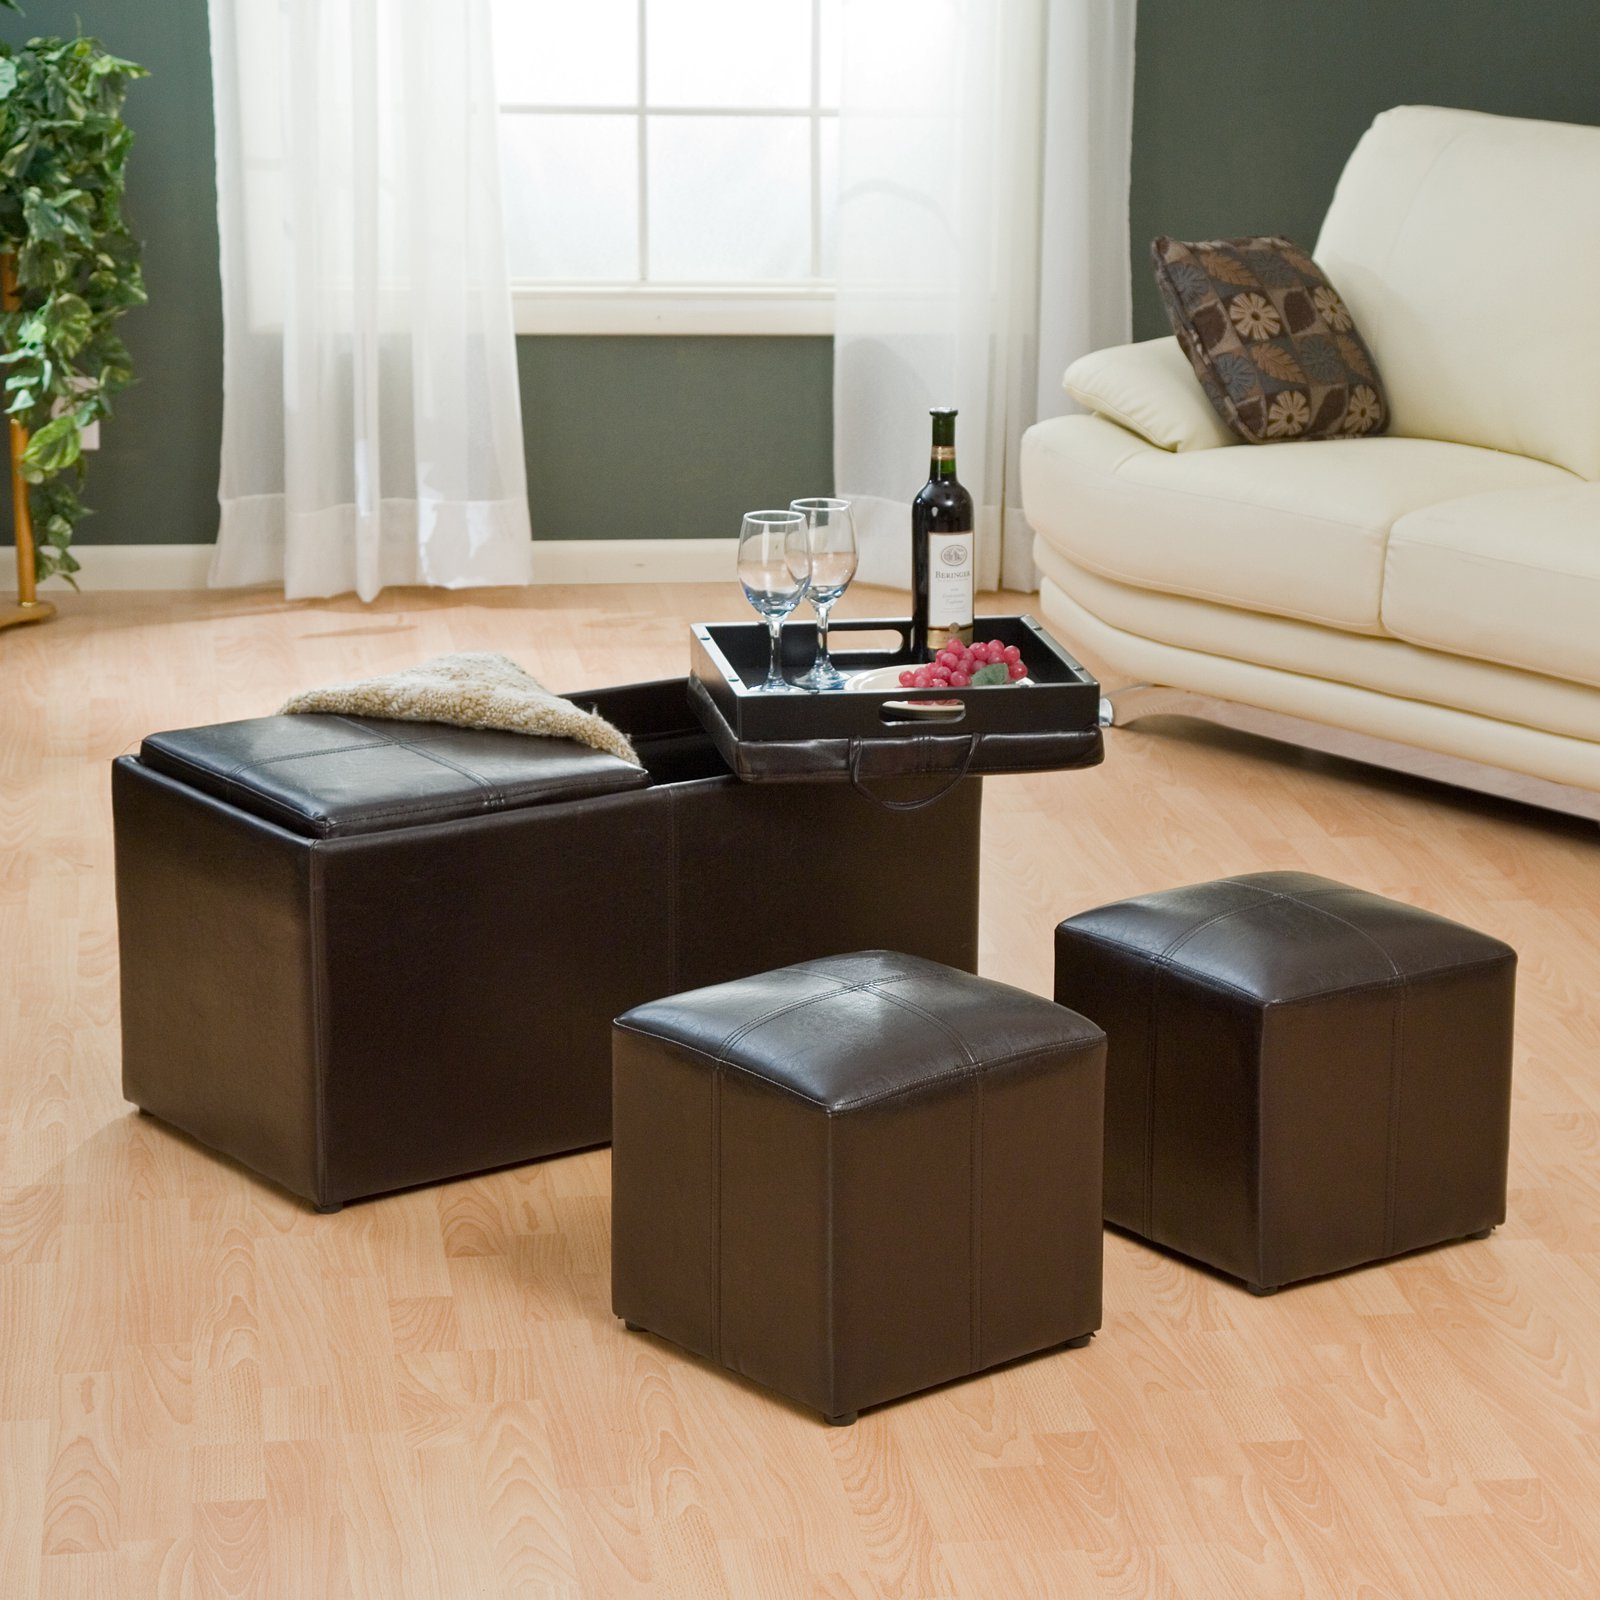 Jameson Double Storage Ottoman with Tray TablesWalmartcom